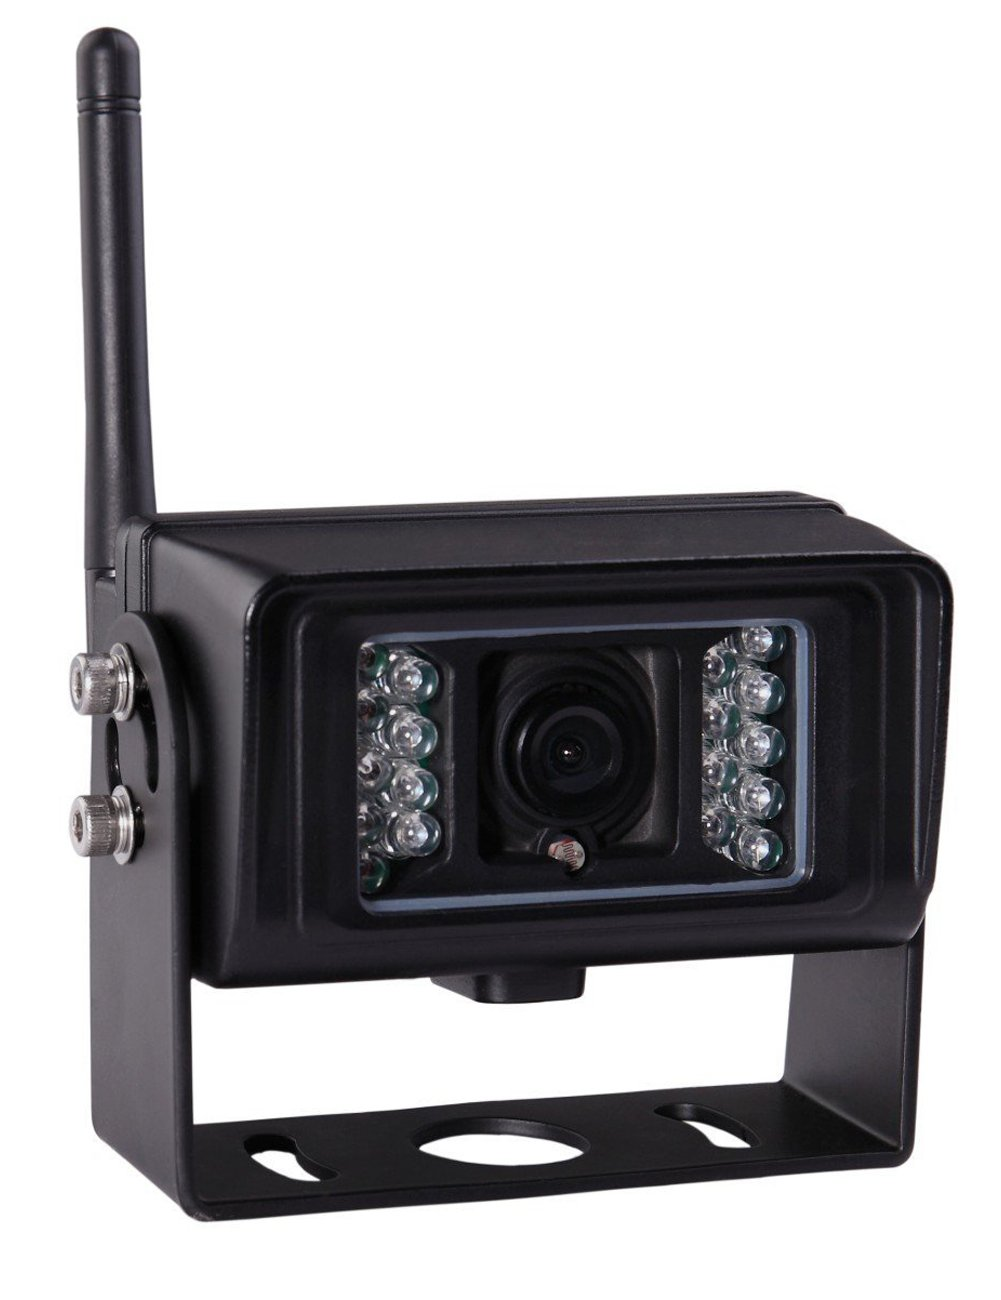 61Rr4nQXcpL._SL1300_ amazon com digital wireless rear view backup camera system, 7  at couponss.co